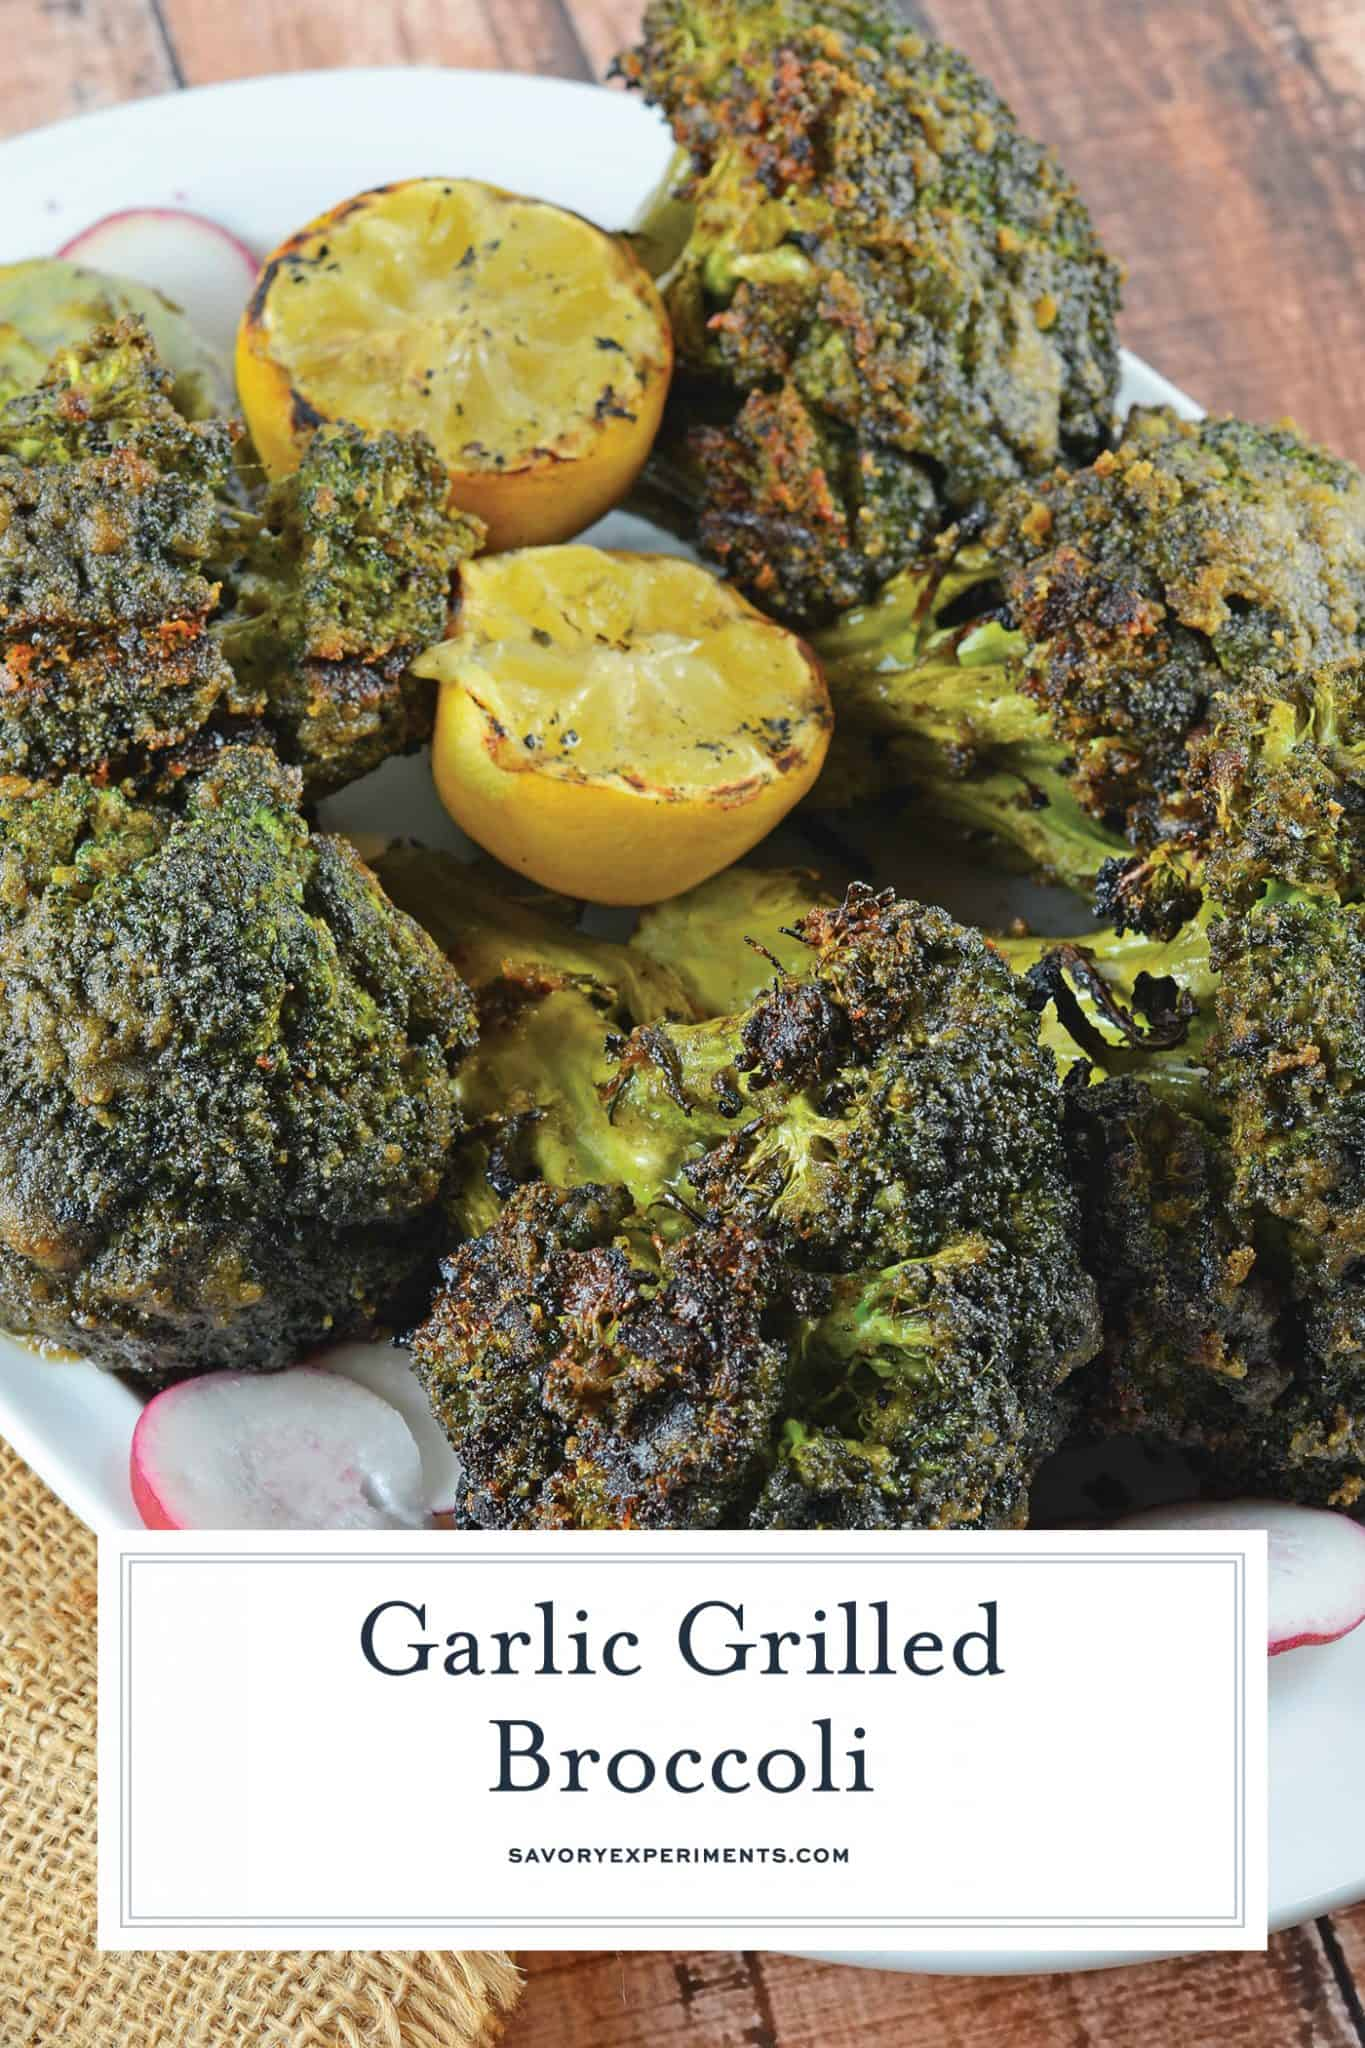 Garlic Grilled Broccoli is an excellent side dish for grilled meals! It is marinated in a garlic and spice mix and then charred on the grill for great flavor! #grilledbroccoli #howtogrillbroccoli #broccolirecipe www.savoryexperiments.com